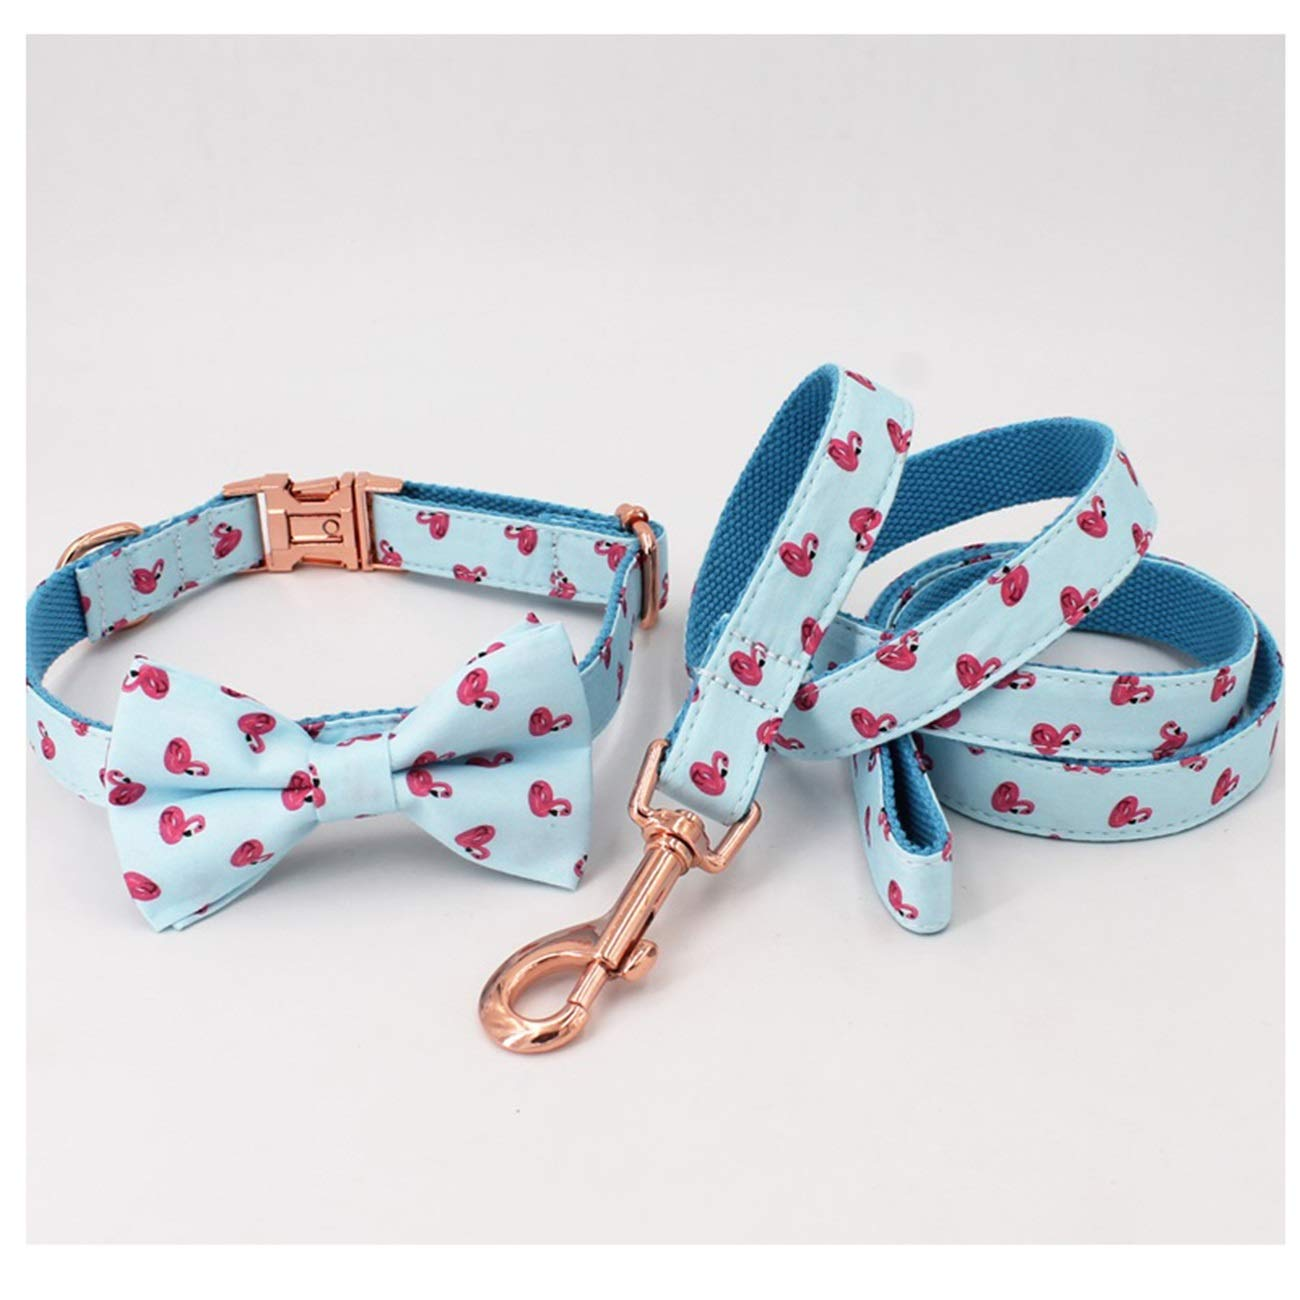 Collar bow leash XS(15-25cm Length) collar bow leash XS(15-25cm Length) Beatybag Summer Flamingo Dog Collar and Leash Set with Bow Tie for Big and Small Dog Cotton Fabric Collar pink gold Metal Buckle Collar Bow Leash XS(15-25cm Length)